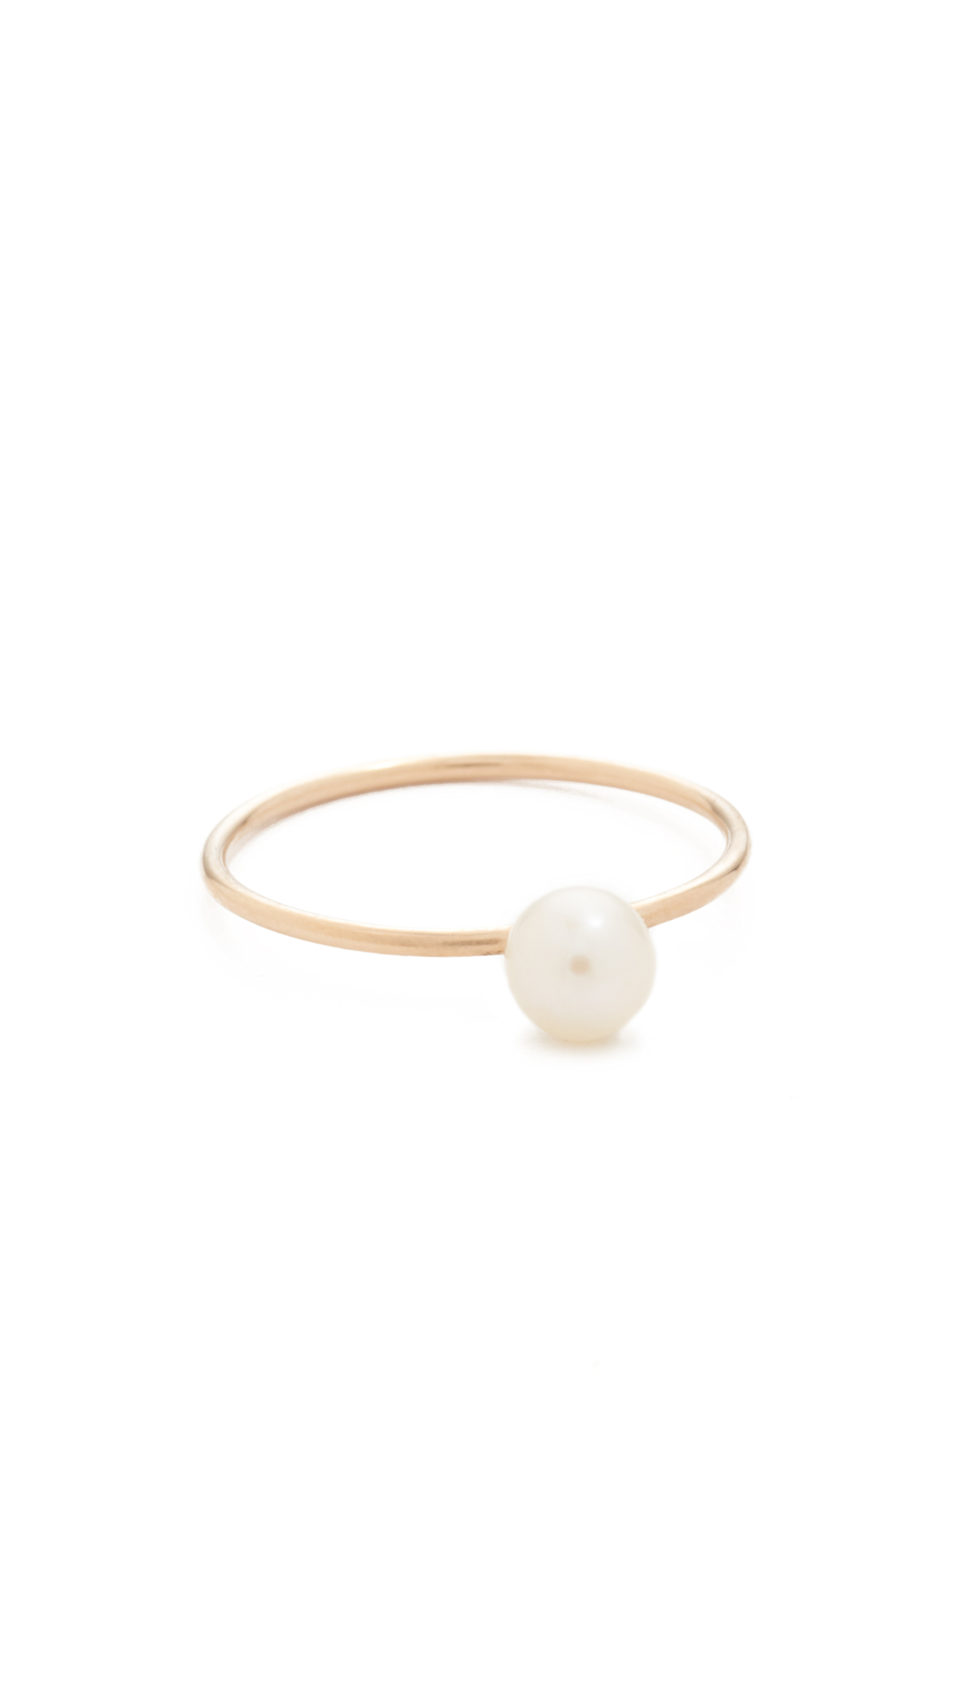 "<br><br><strong>Zoë Chicco</strong> 14k Gold Freshwater Cultured Pearl Stacking Ring, $, available at <a href=""https://go.skimresources.com/?id=30283X879131&url=https%3A%2F%2Fwww.shopbop.com%2Fpearls-stacking-ring-zoe-chicco%2Fvp%2Fv%3D1%2F1536379535.htm%3FfolderID%3D42462%26fm%3Dother-shopbysize-viewall%26os%3Dfalse%26colorId%3D14583"" rel=""nofollow noopener"" target=""_blank"" data-ylk=""slk:Shopbop"" class=""link rapid-noclick-resp"">Shopbop</a><span class=""copyright"">Photo Courtesy of Shopbop.</span>"